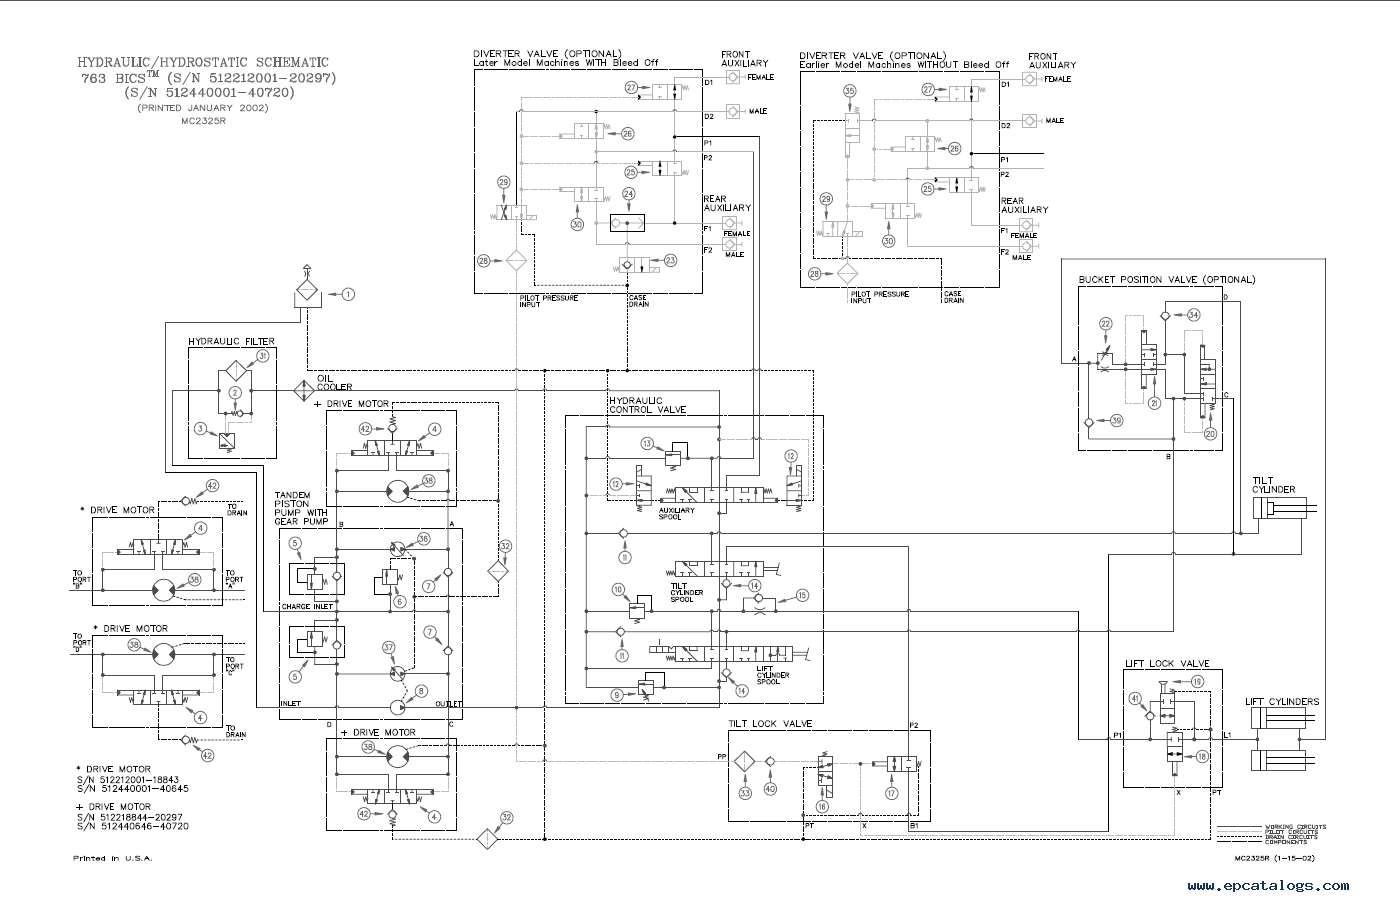 bobcat t320 wiring diagram basic wiring diagram \u2022 t650 bobcat wiring diagram bobcat t320 wiring diagram schematics wiring diagrams u2022 rh seniorlivinguniversity co bobcat t320 manual bobcat 320